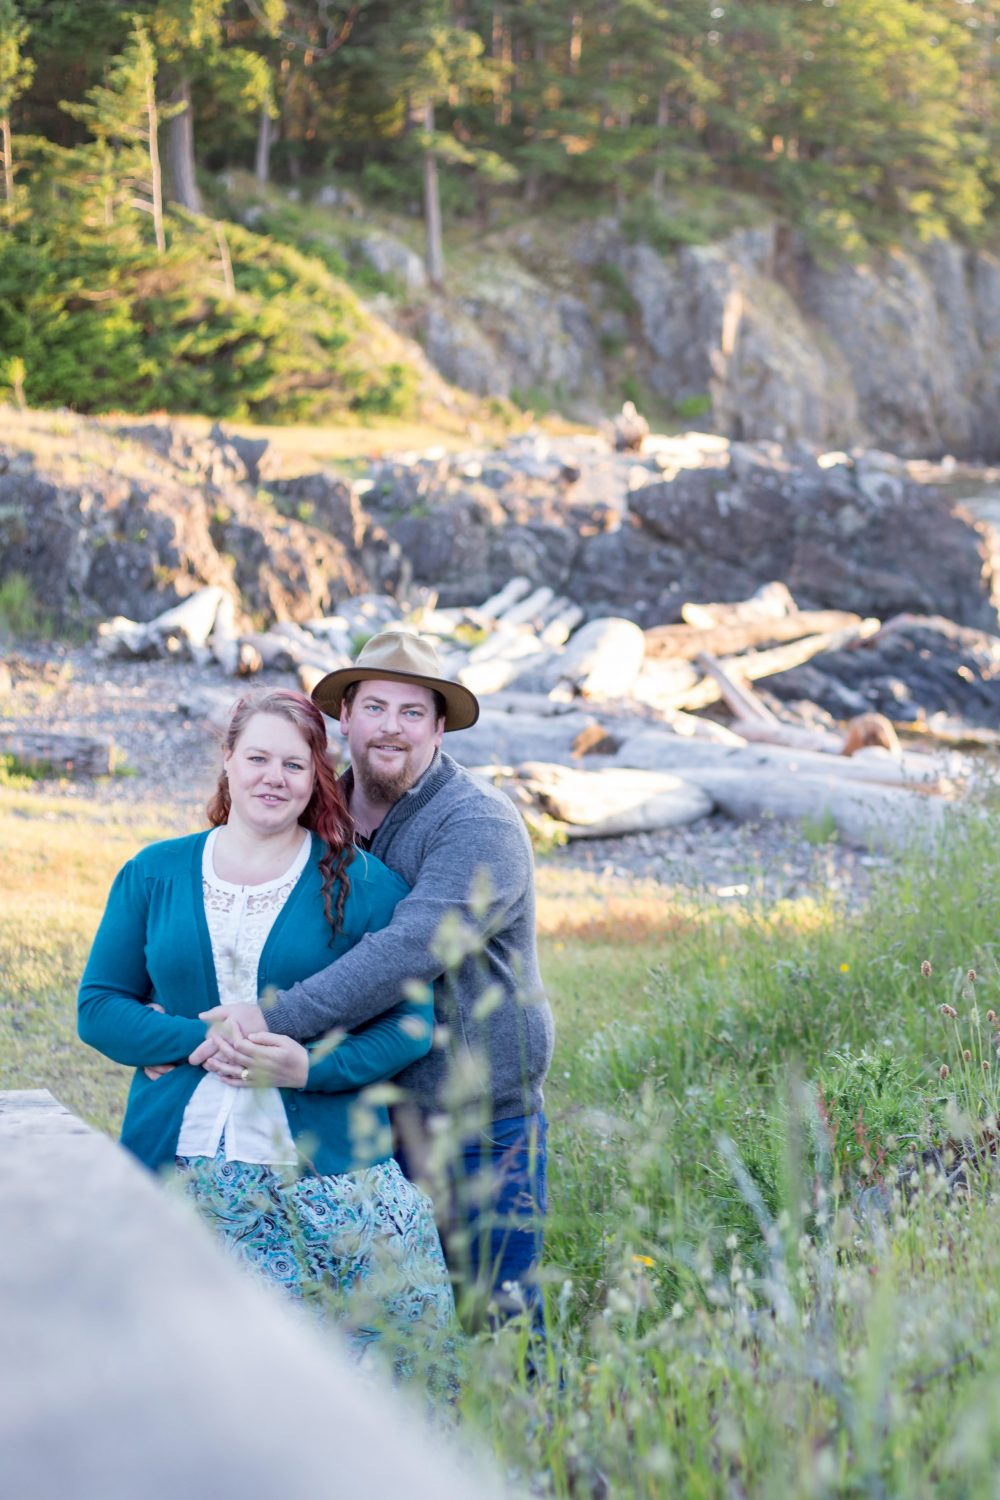 Kristina & Corbin's Neck Point Engagement ♥ Nanaimo Wedding Photographer